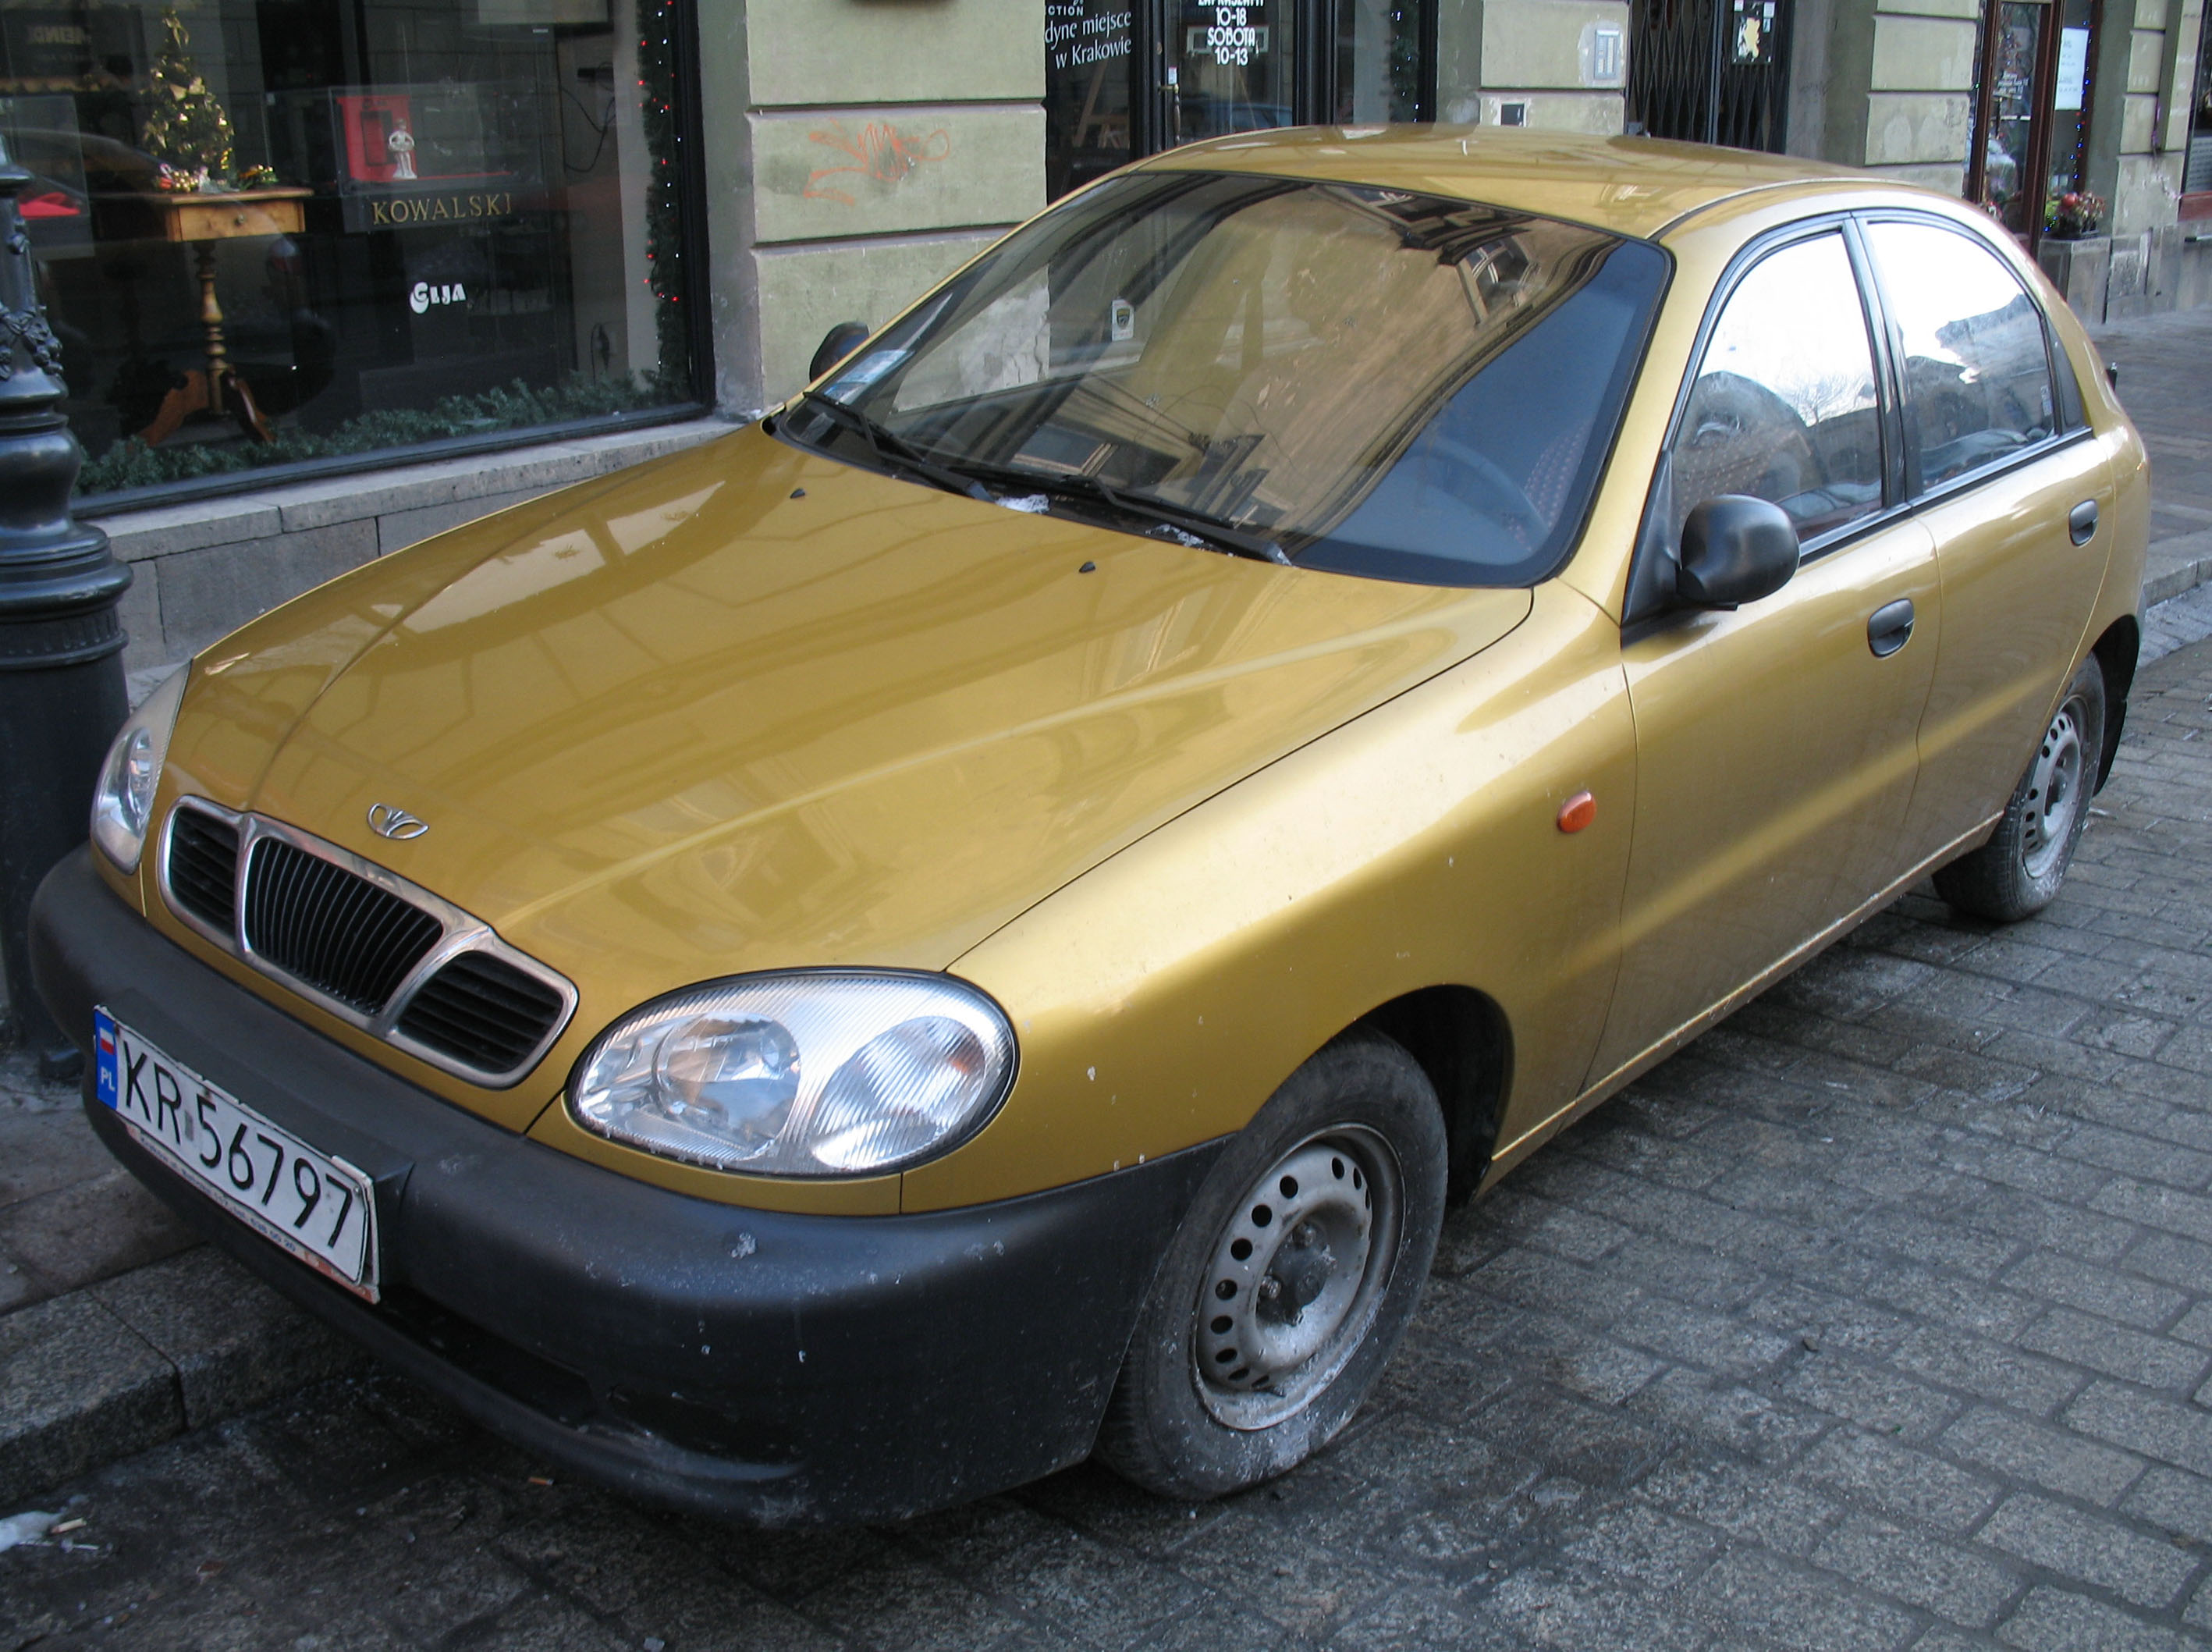 File:Golden Daewoo Lanos 5d in Kraków (1).jpg - Wikimedia Commons